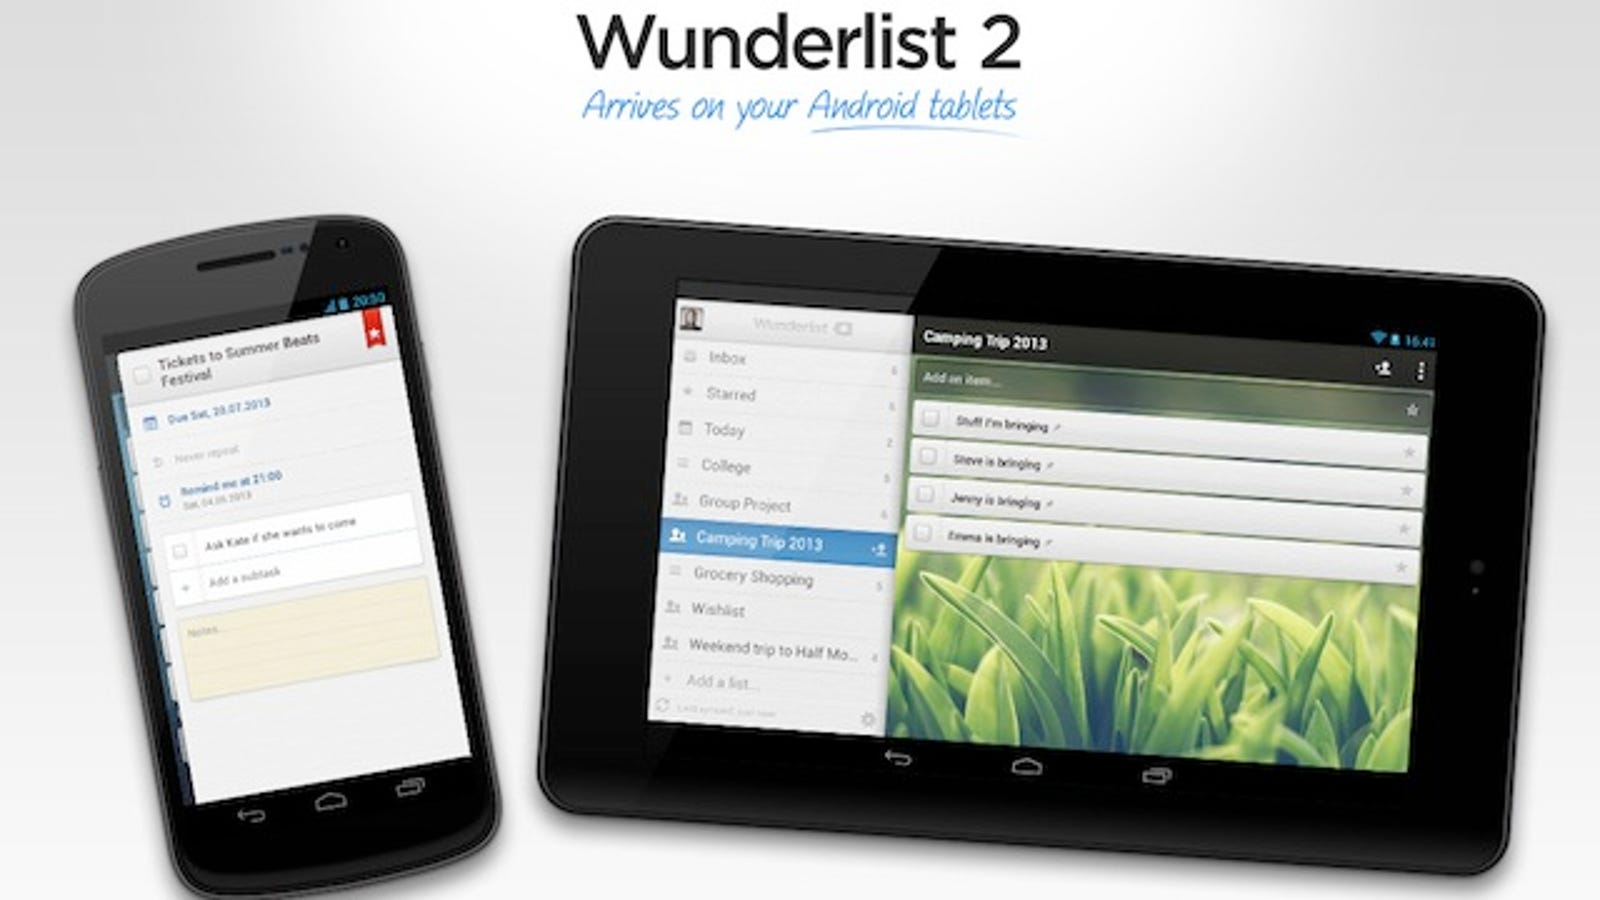 Wunderlist for Android Supports Tablets, Manages Your To-Dos